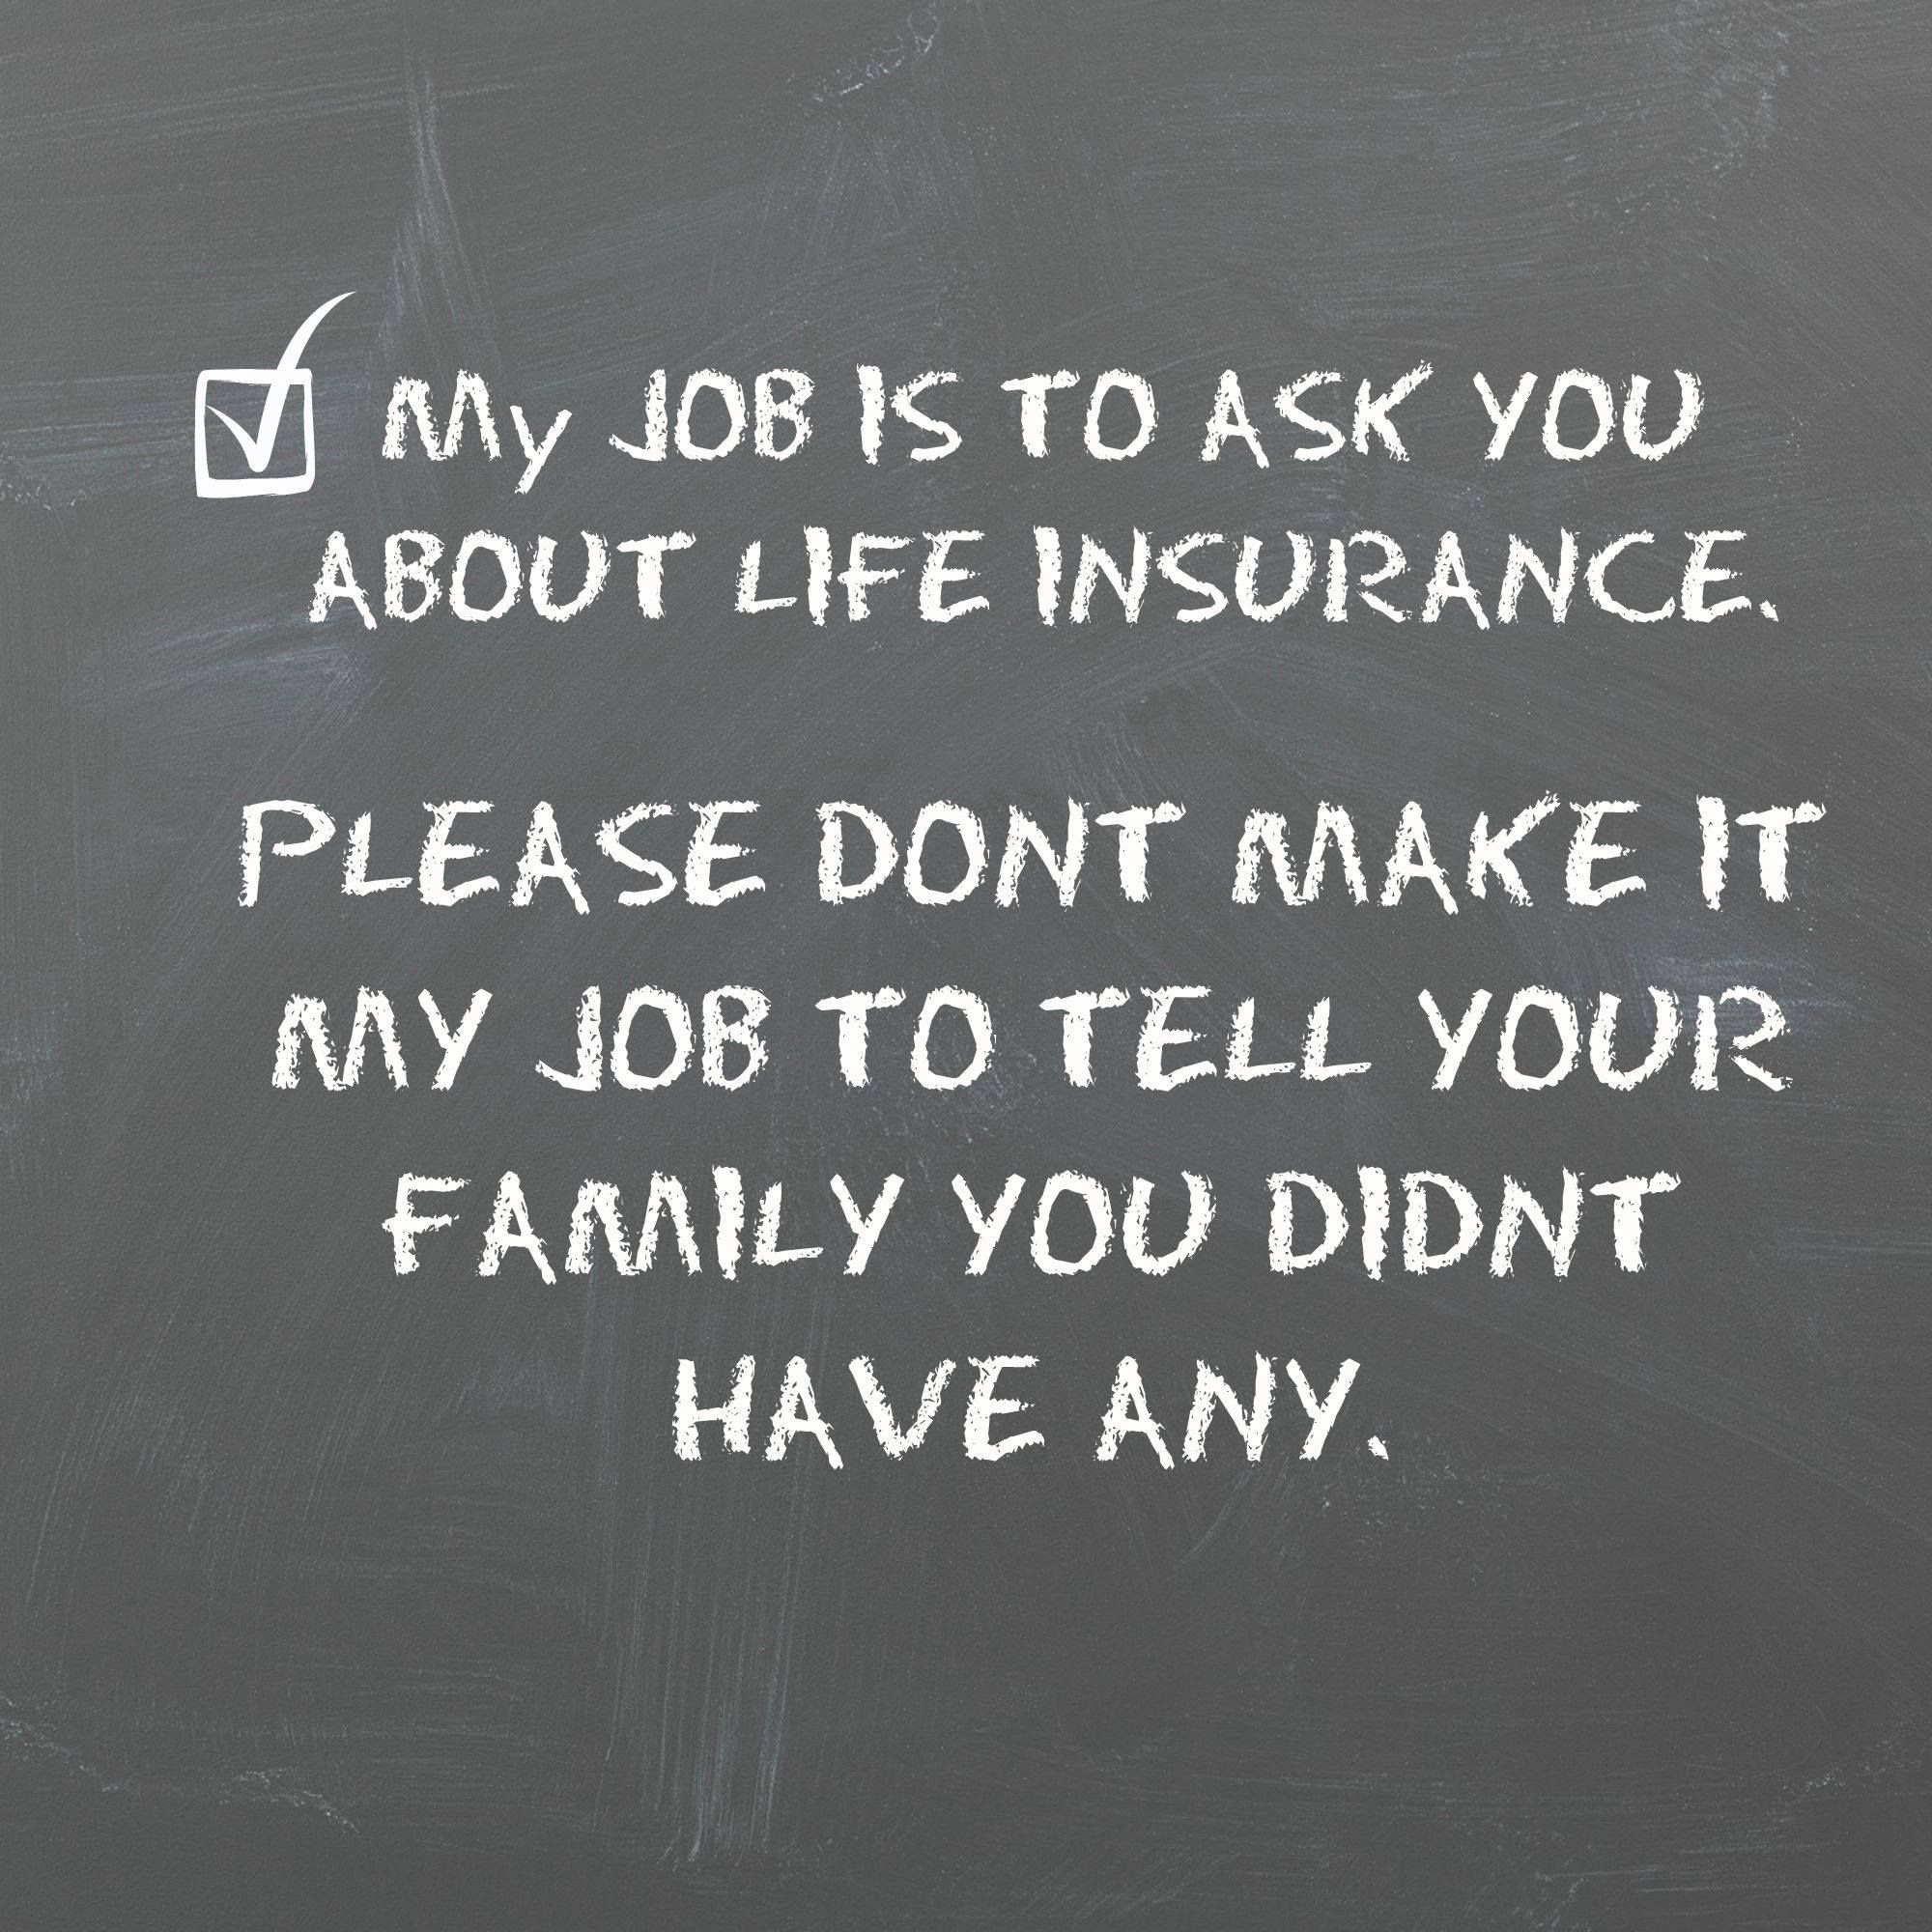 Family Life Insurance Quotes: Life Insurance Agent, Life Insurance Awareness Month